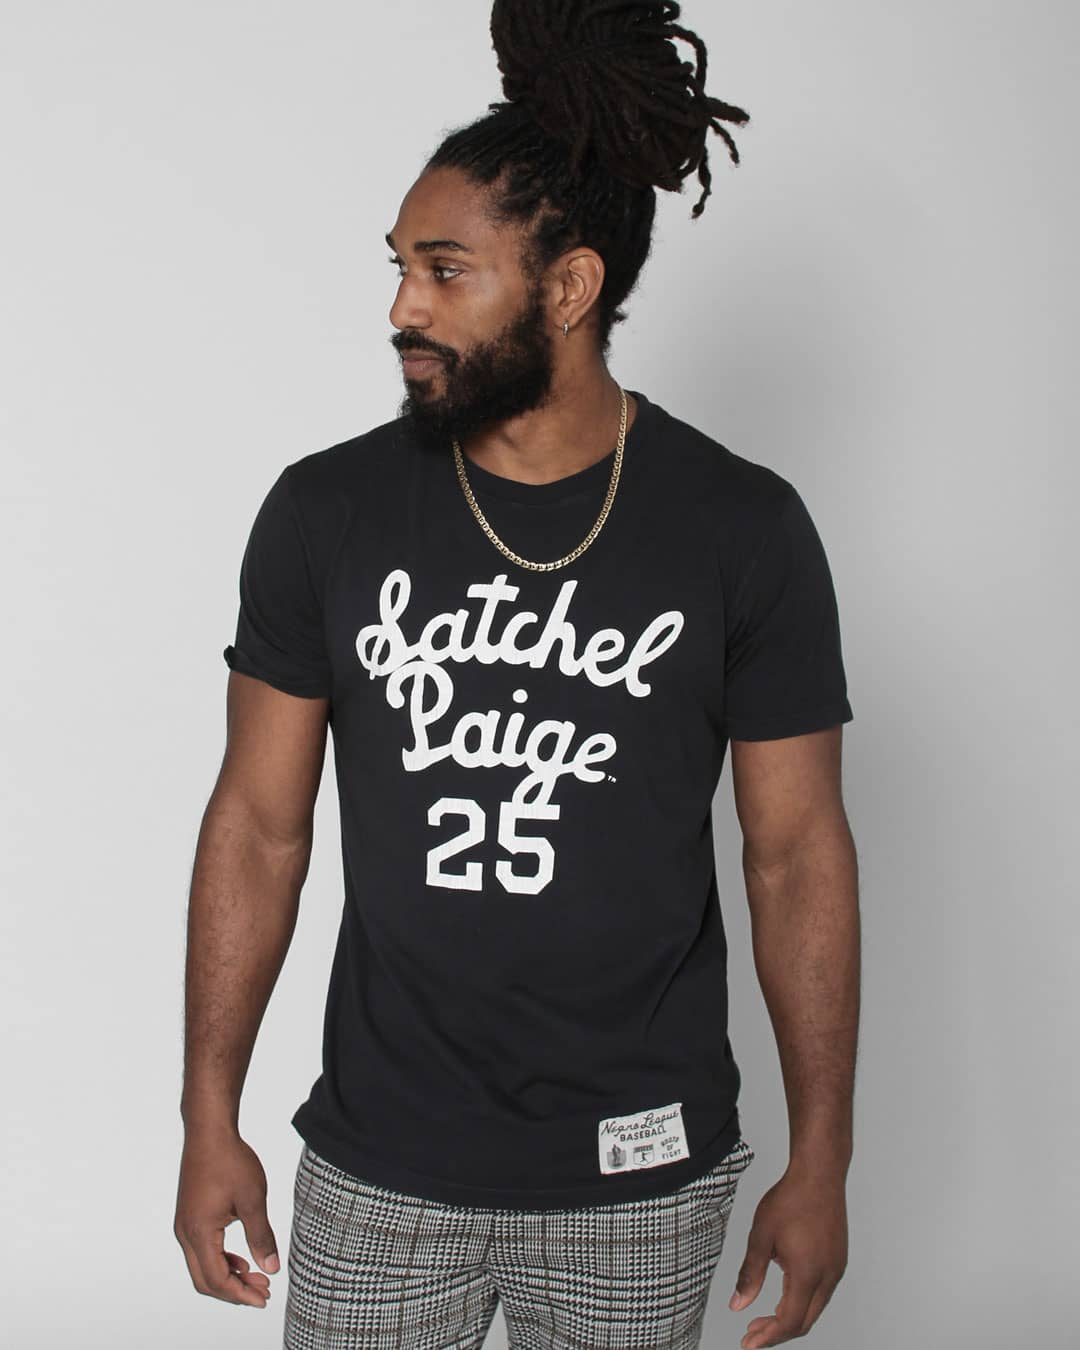 Satchel Paige 25 Tee - Roots of Inc dba Roots of Fight